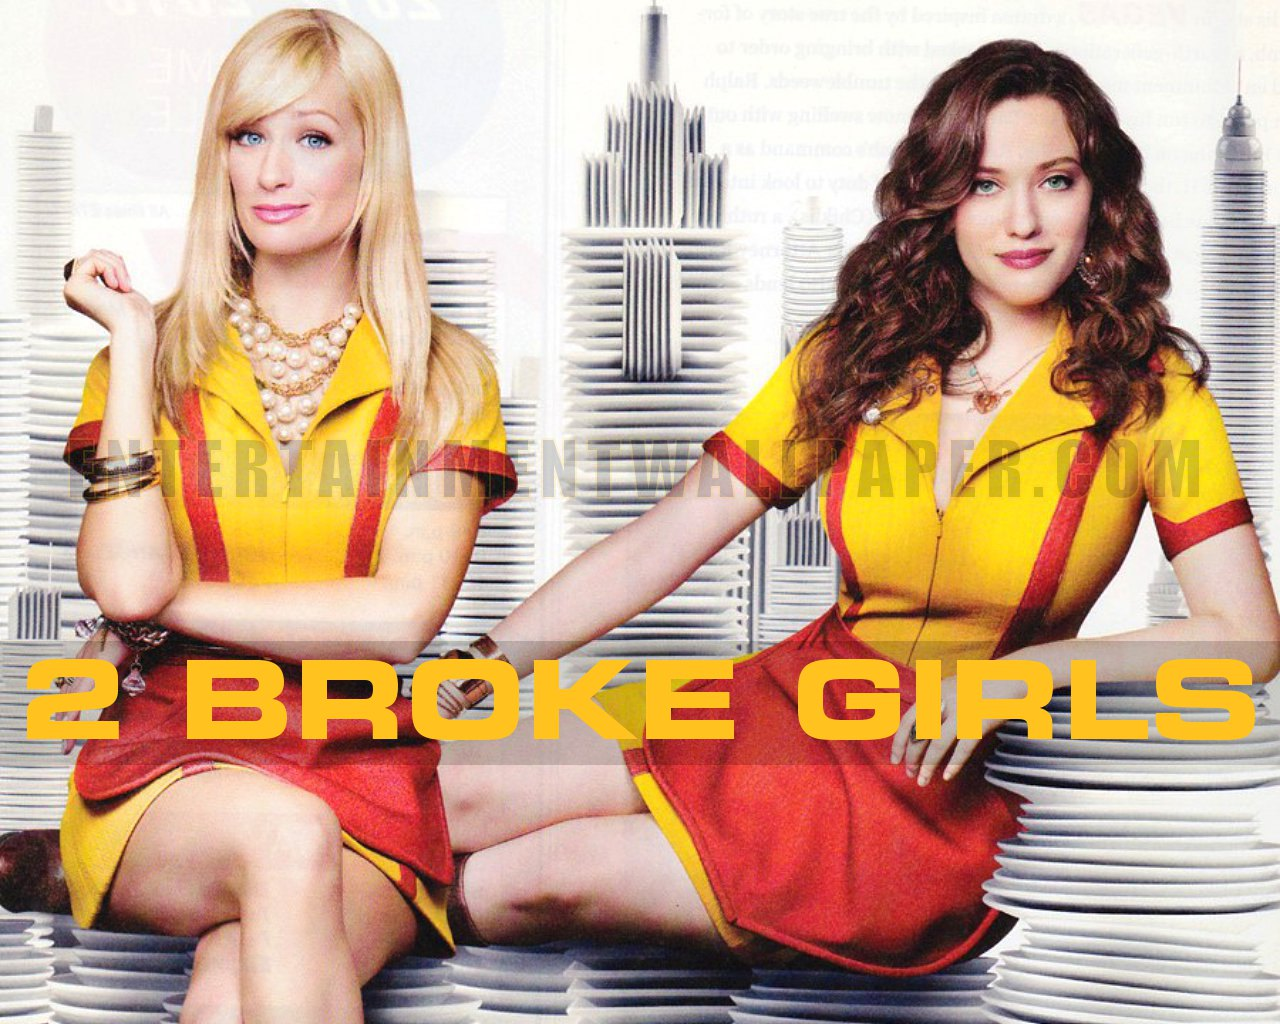 2 Broke Girls Pics, TV Show Collection